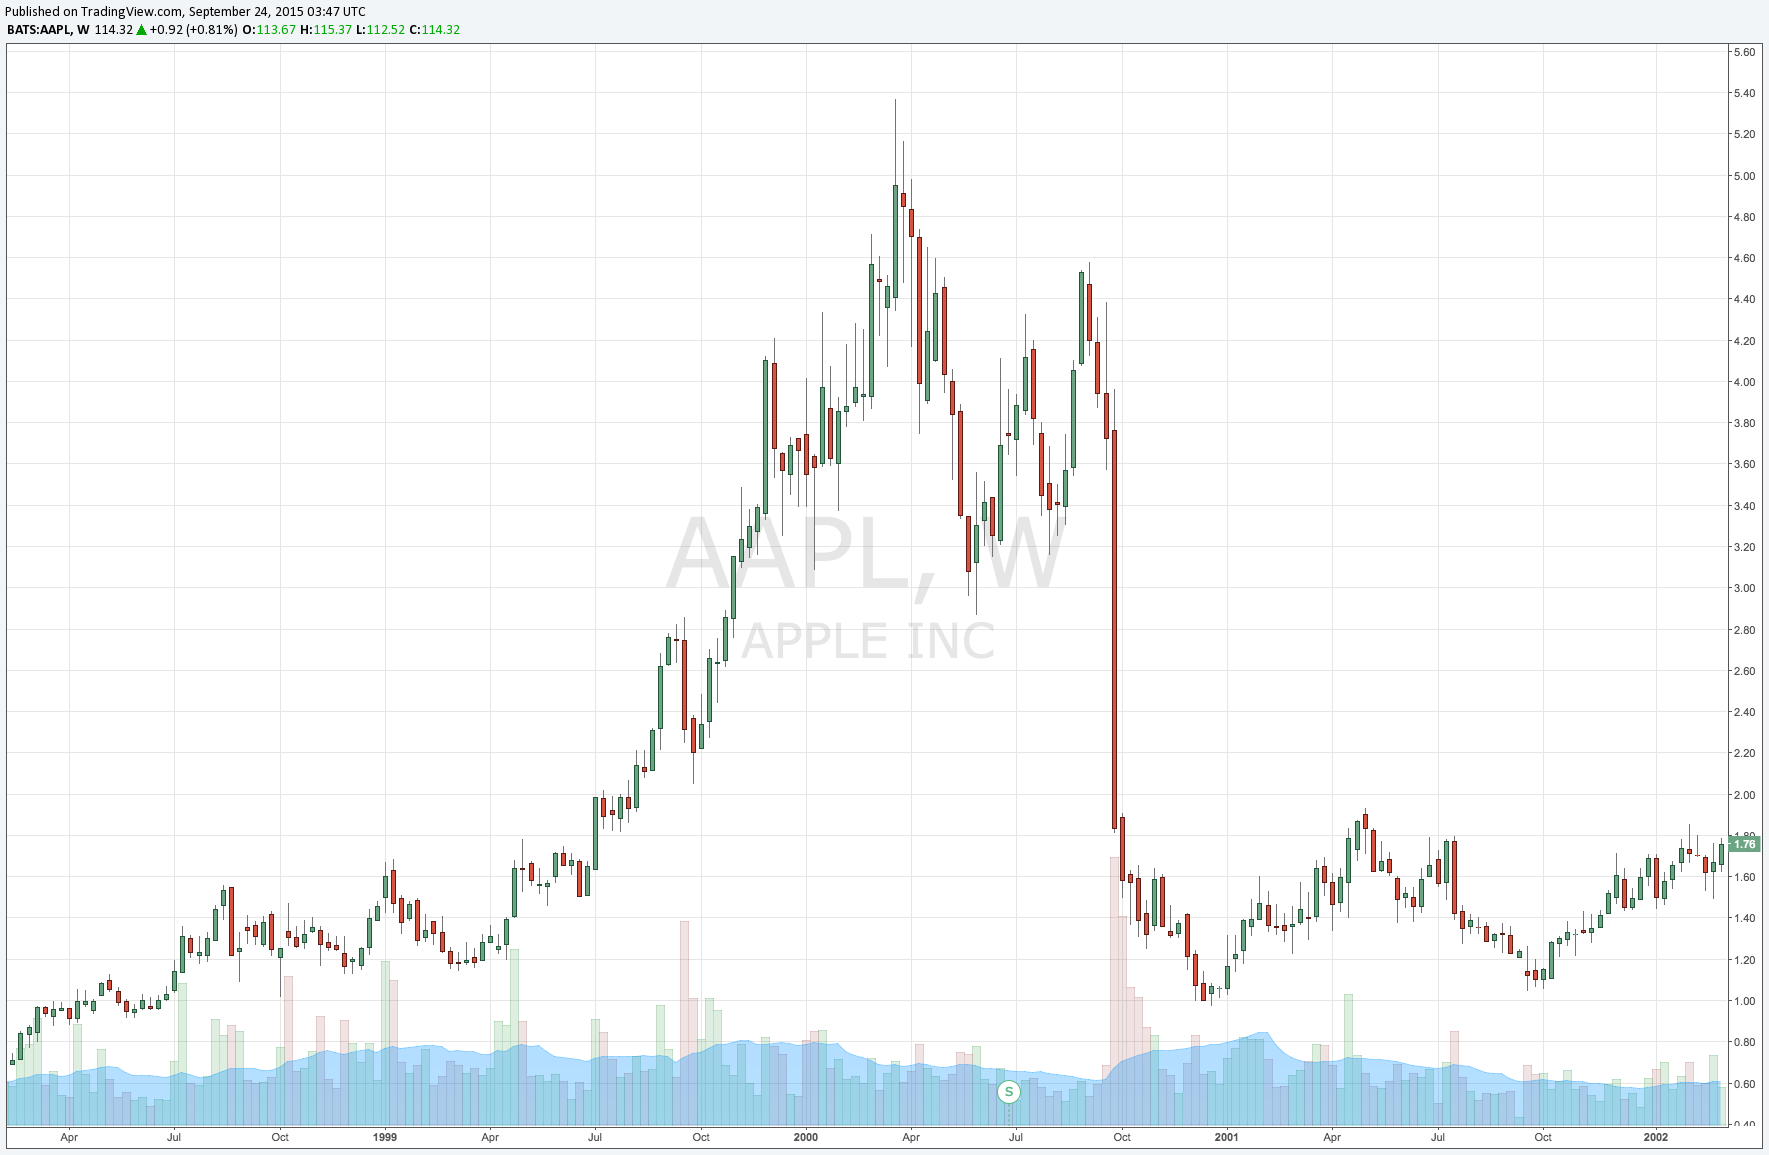 AAPL Bubble.png